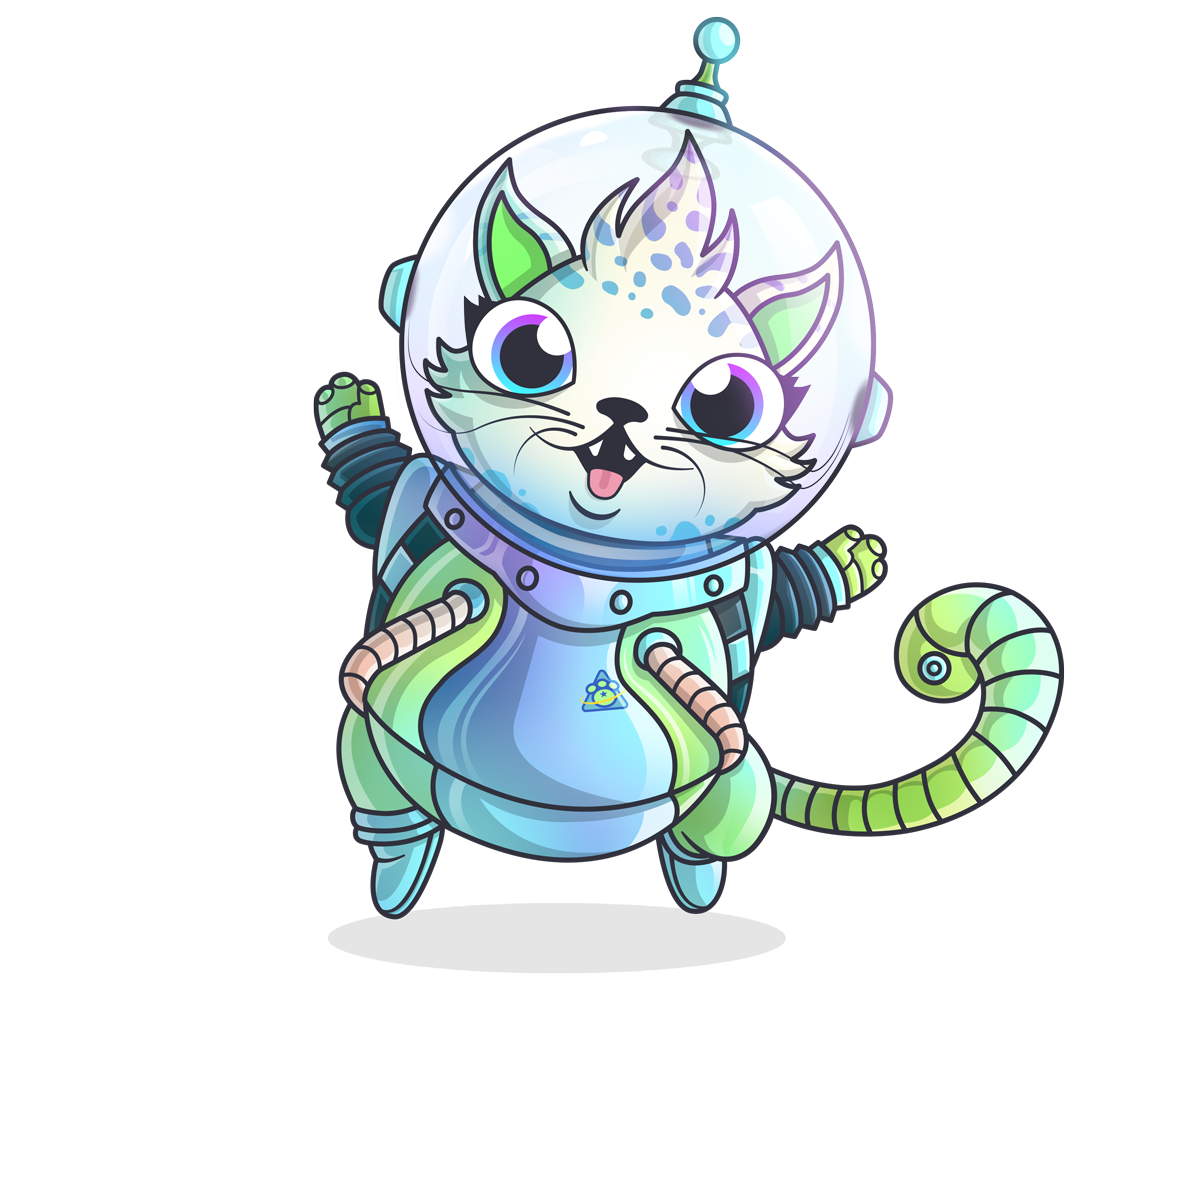 cryptokitty #1820401